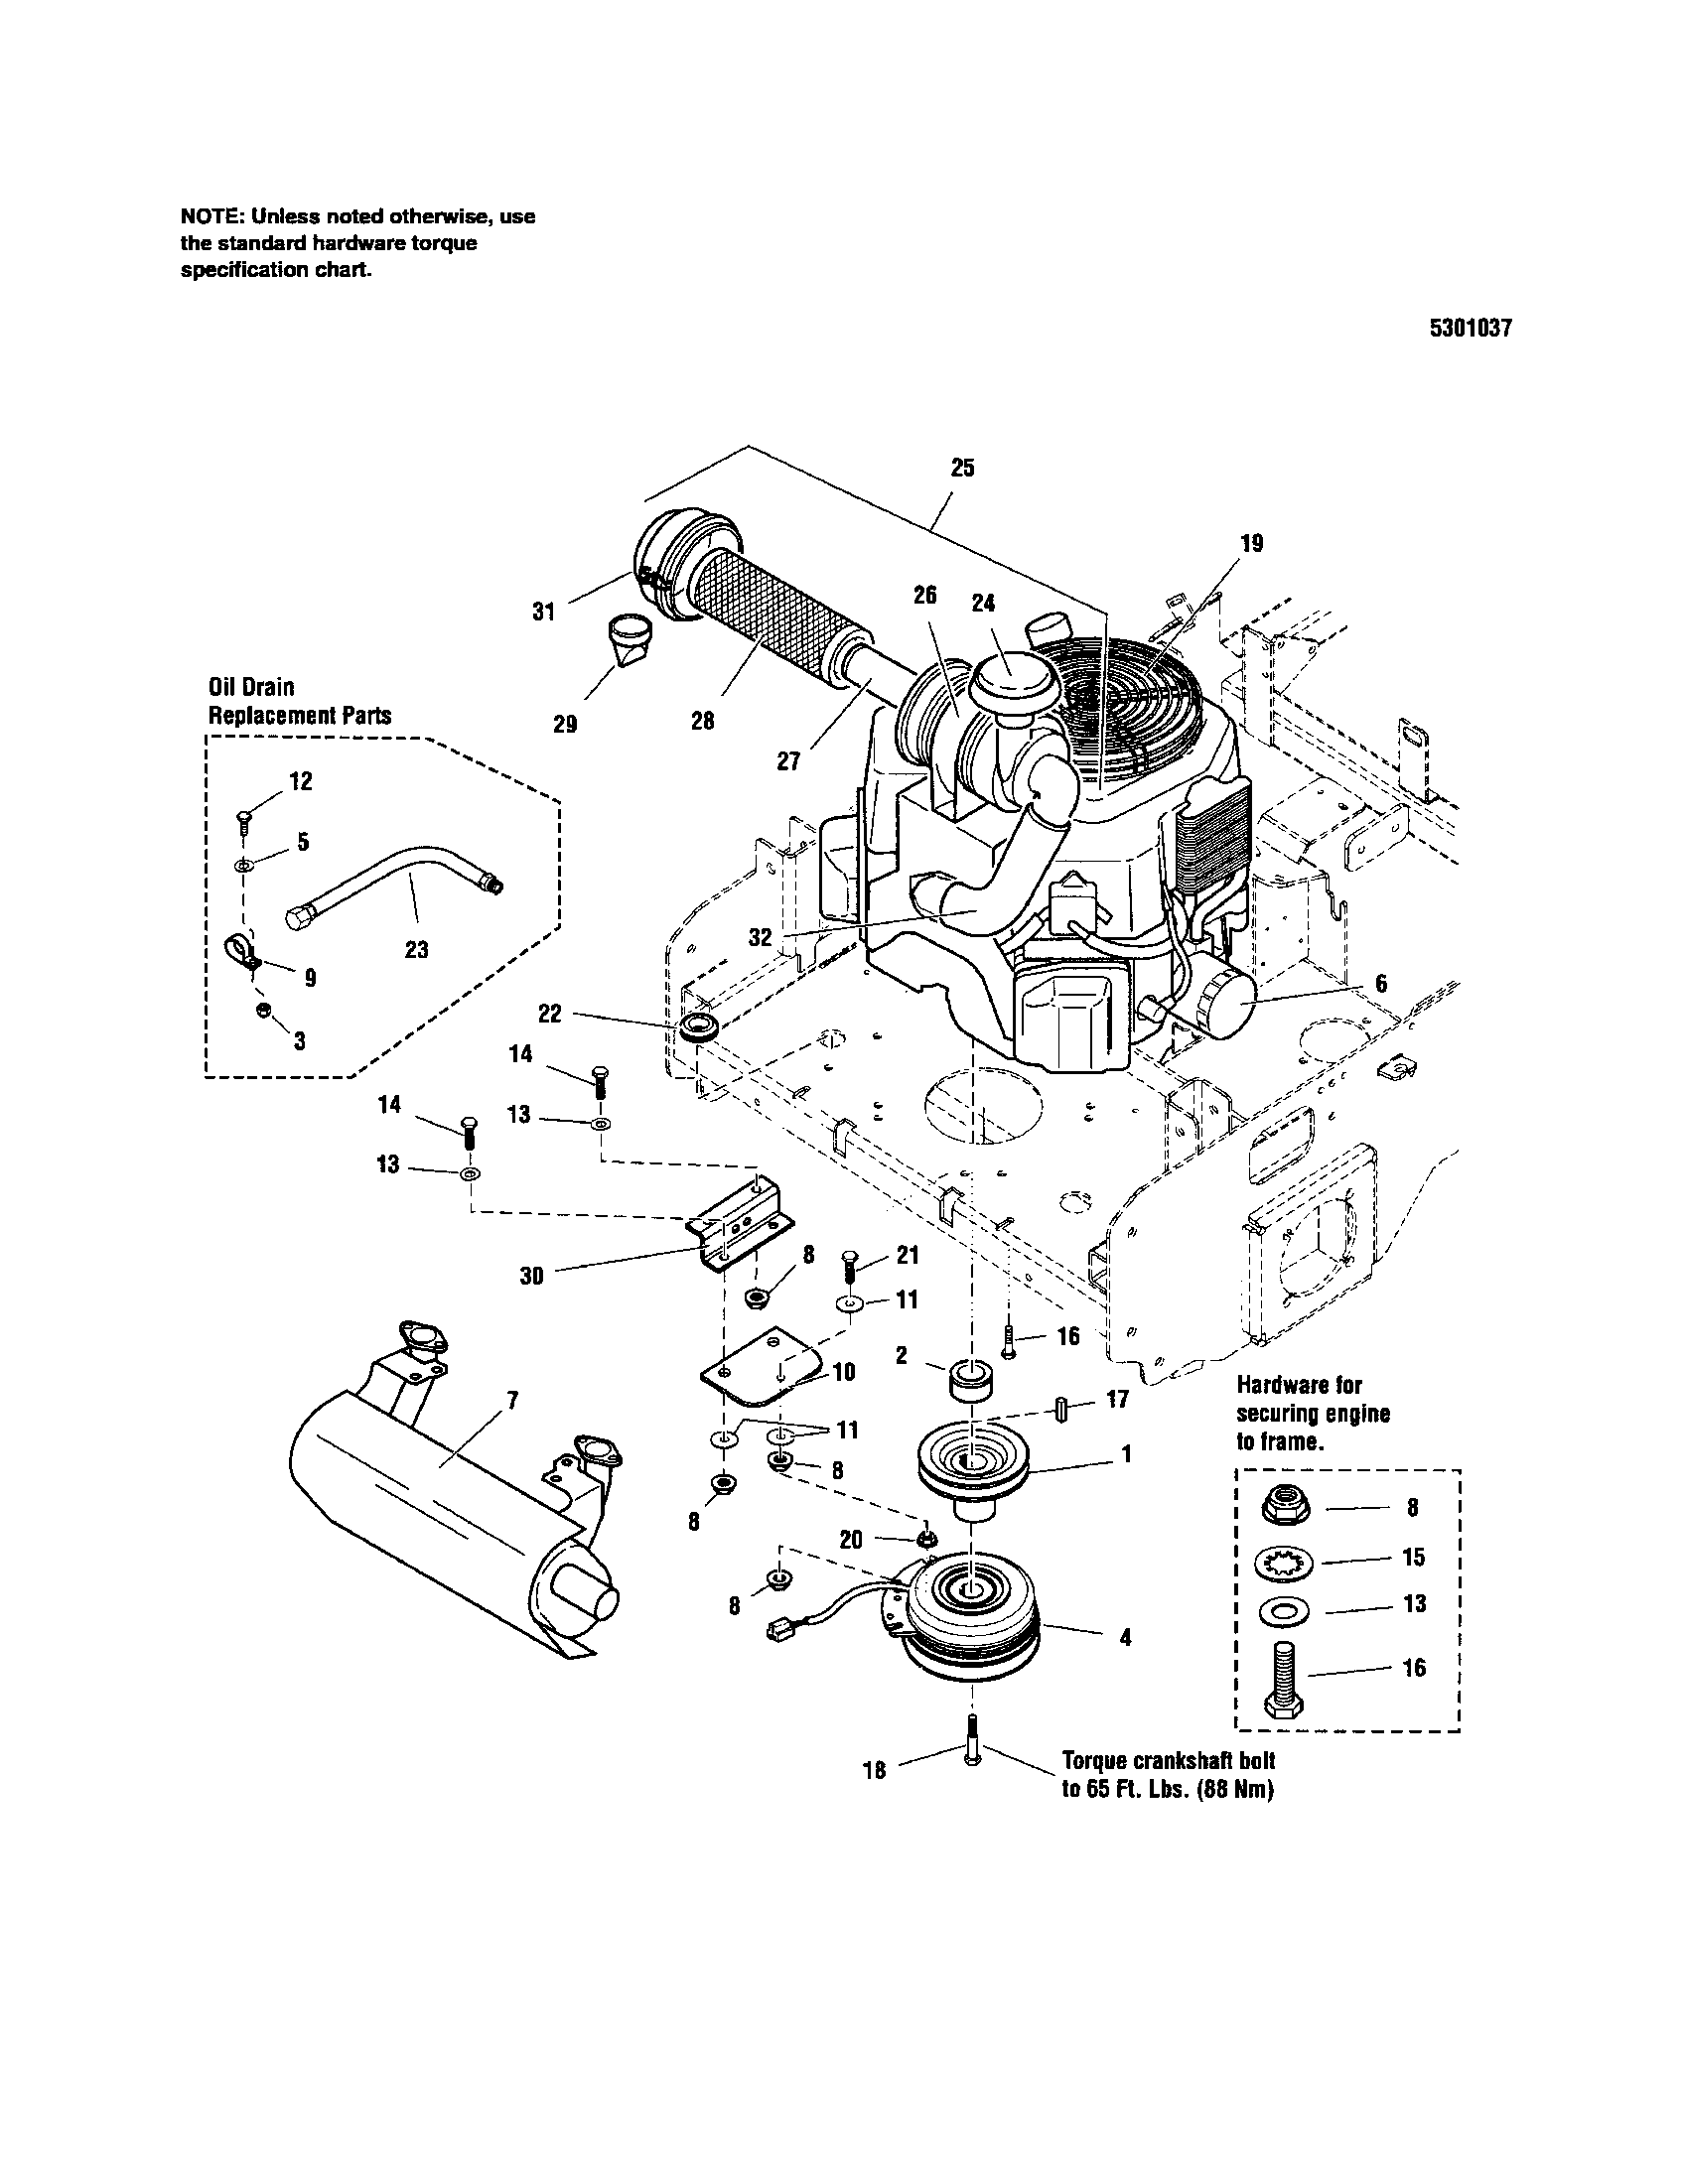 kohler sn 000101 above wiring diagram 18hp diagram and parts